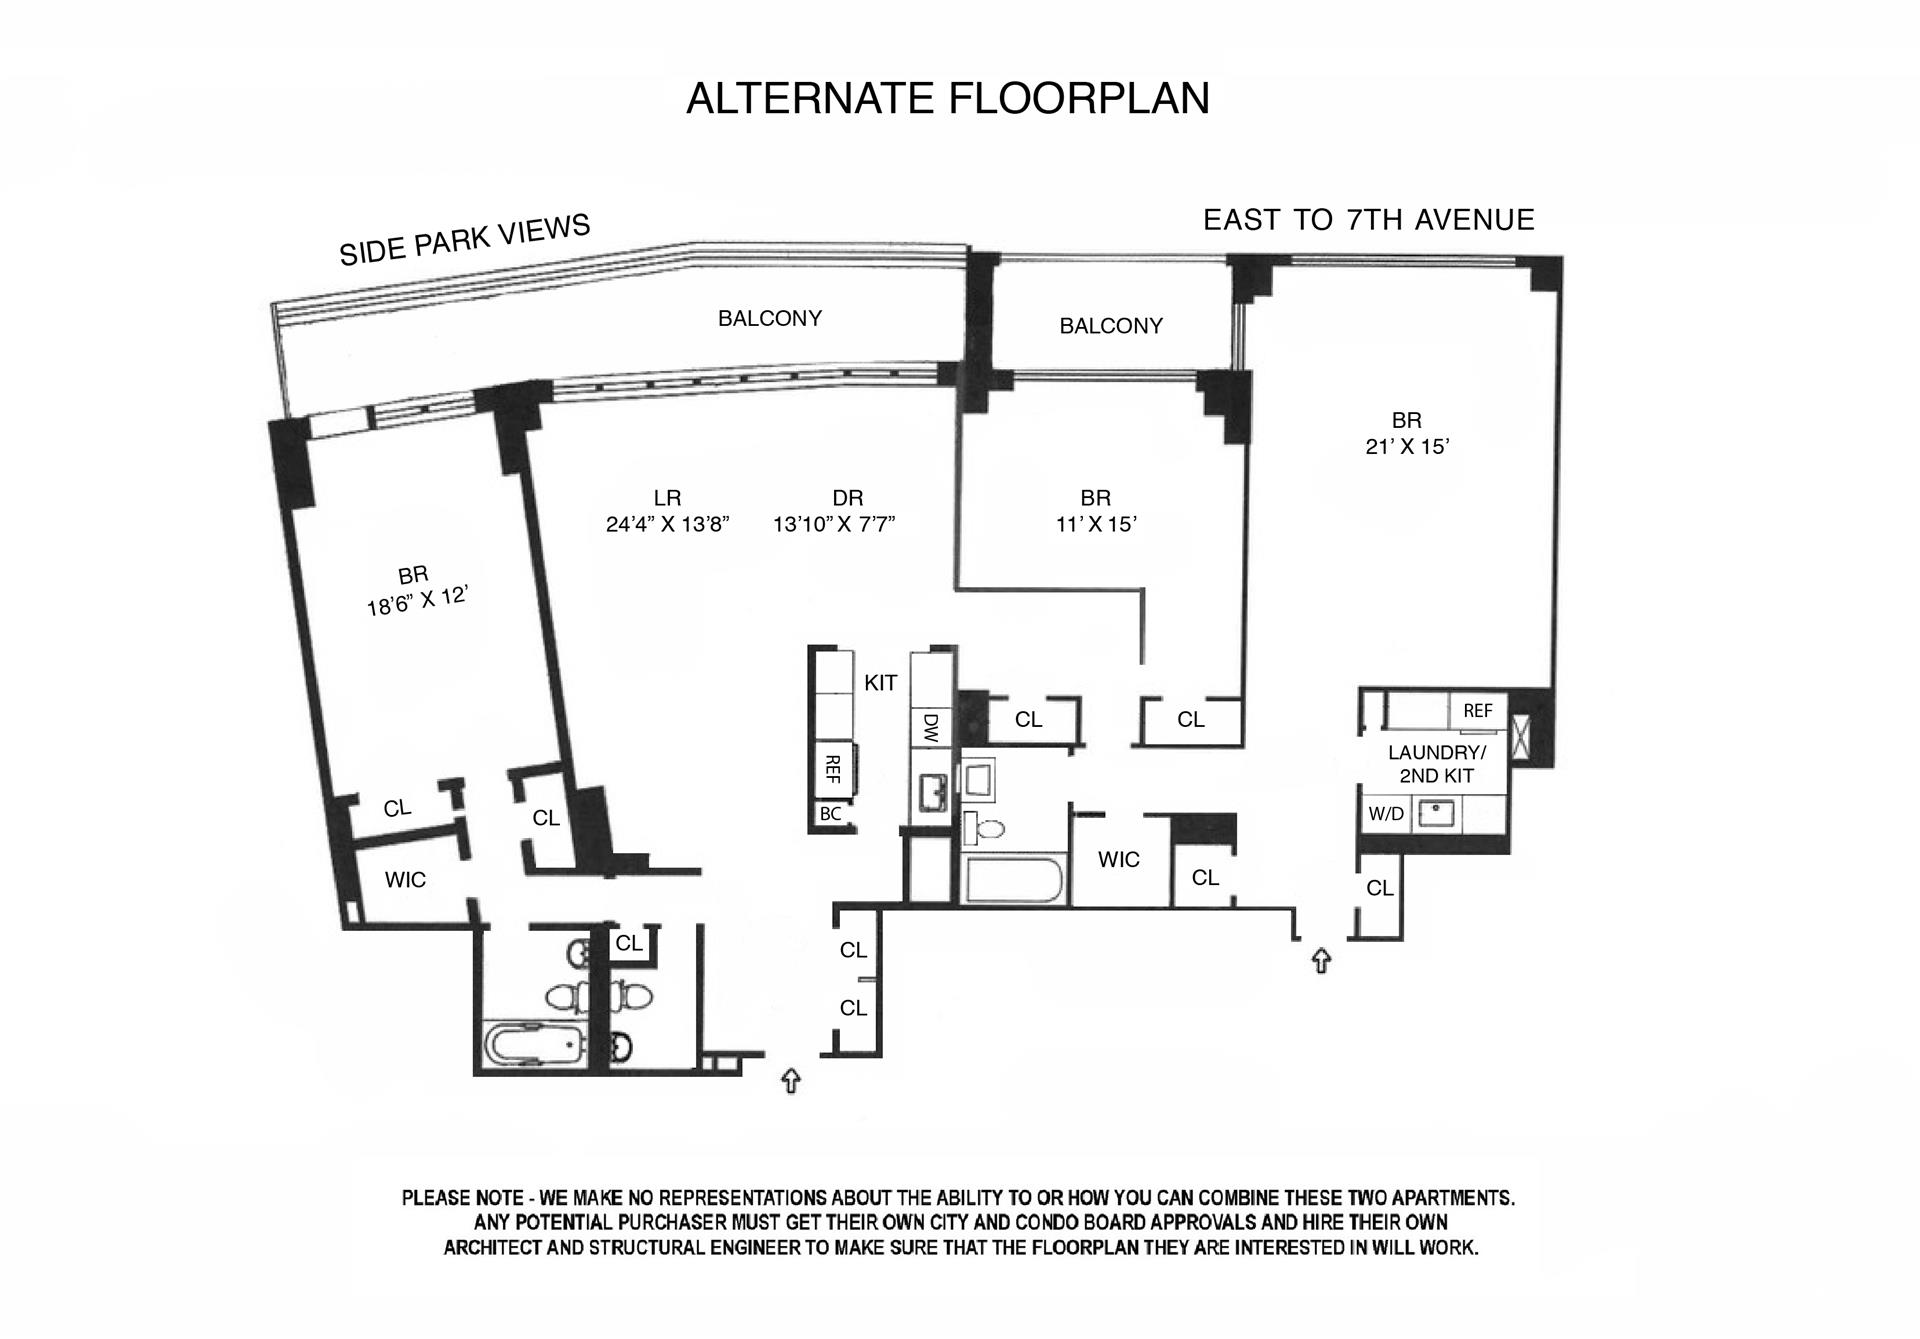 Floor plan of 200 Central Park South, 8IH - Central Park South, New York